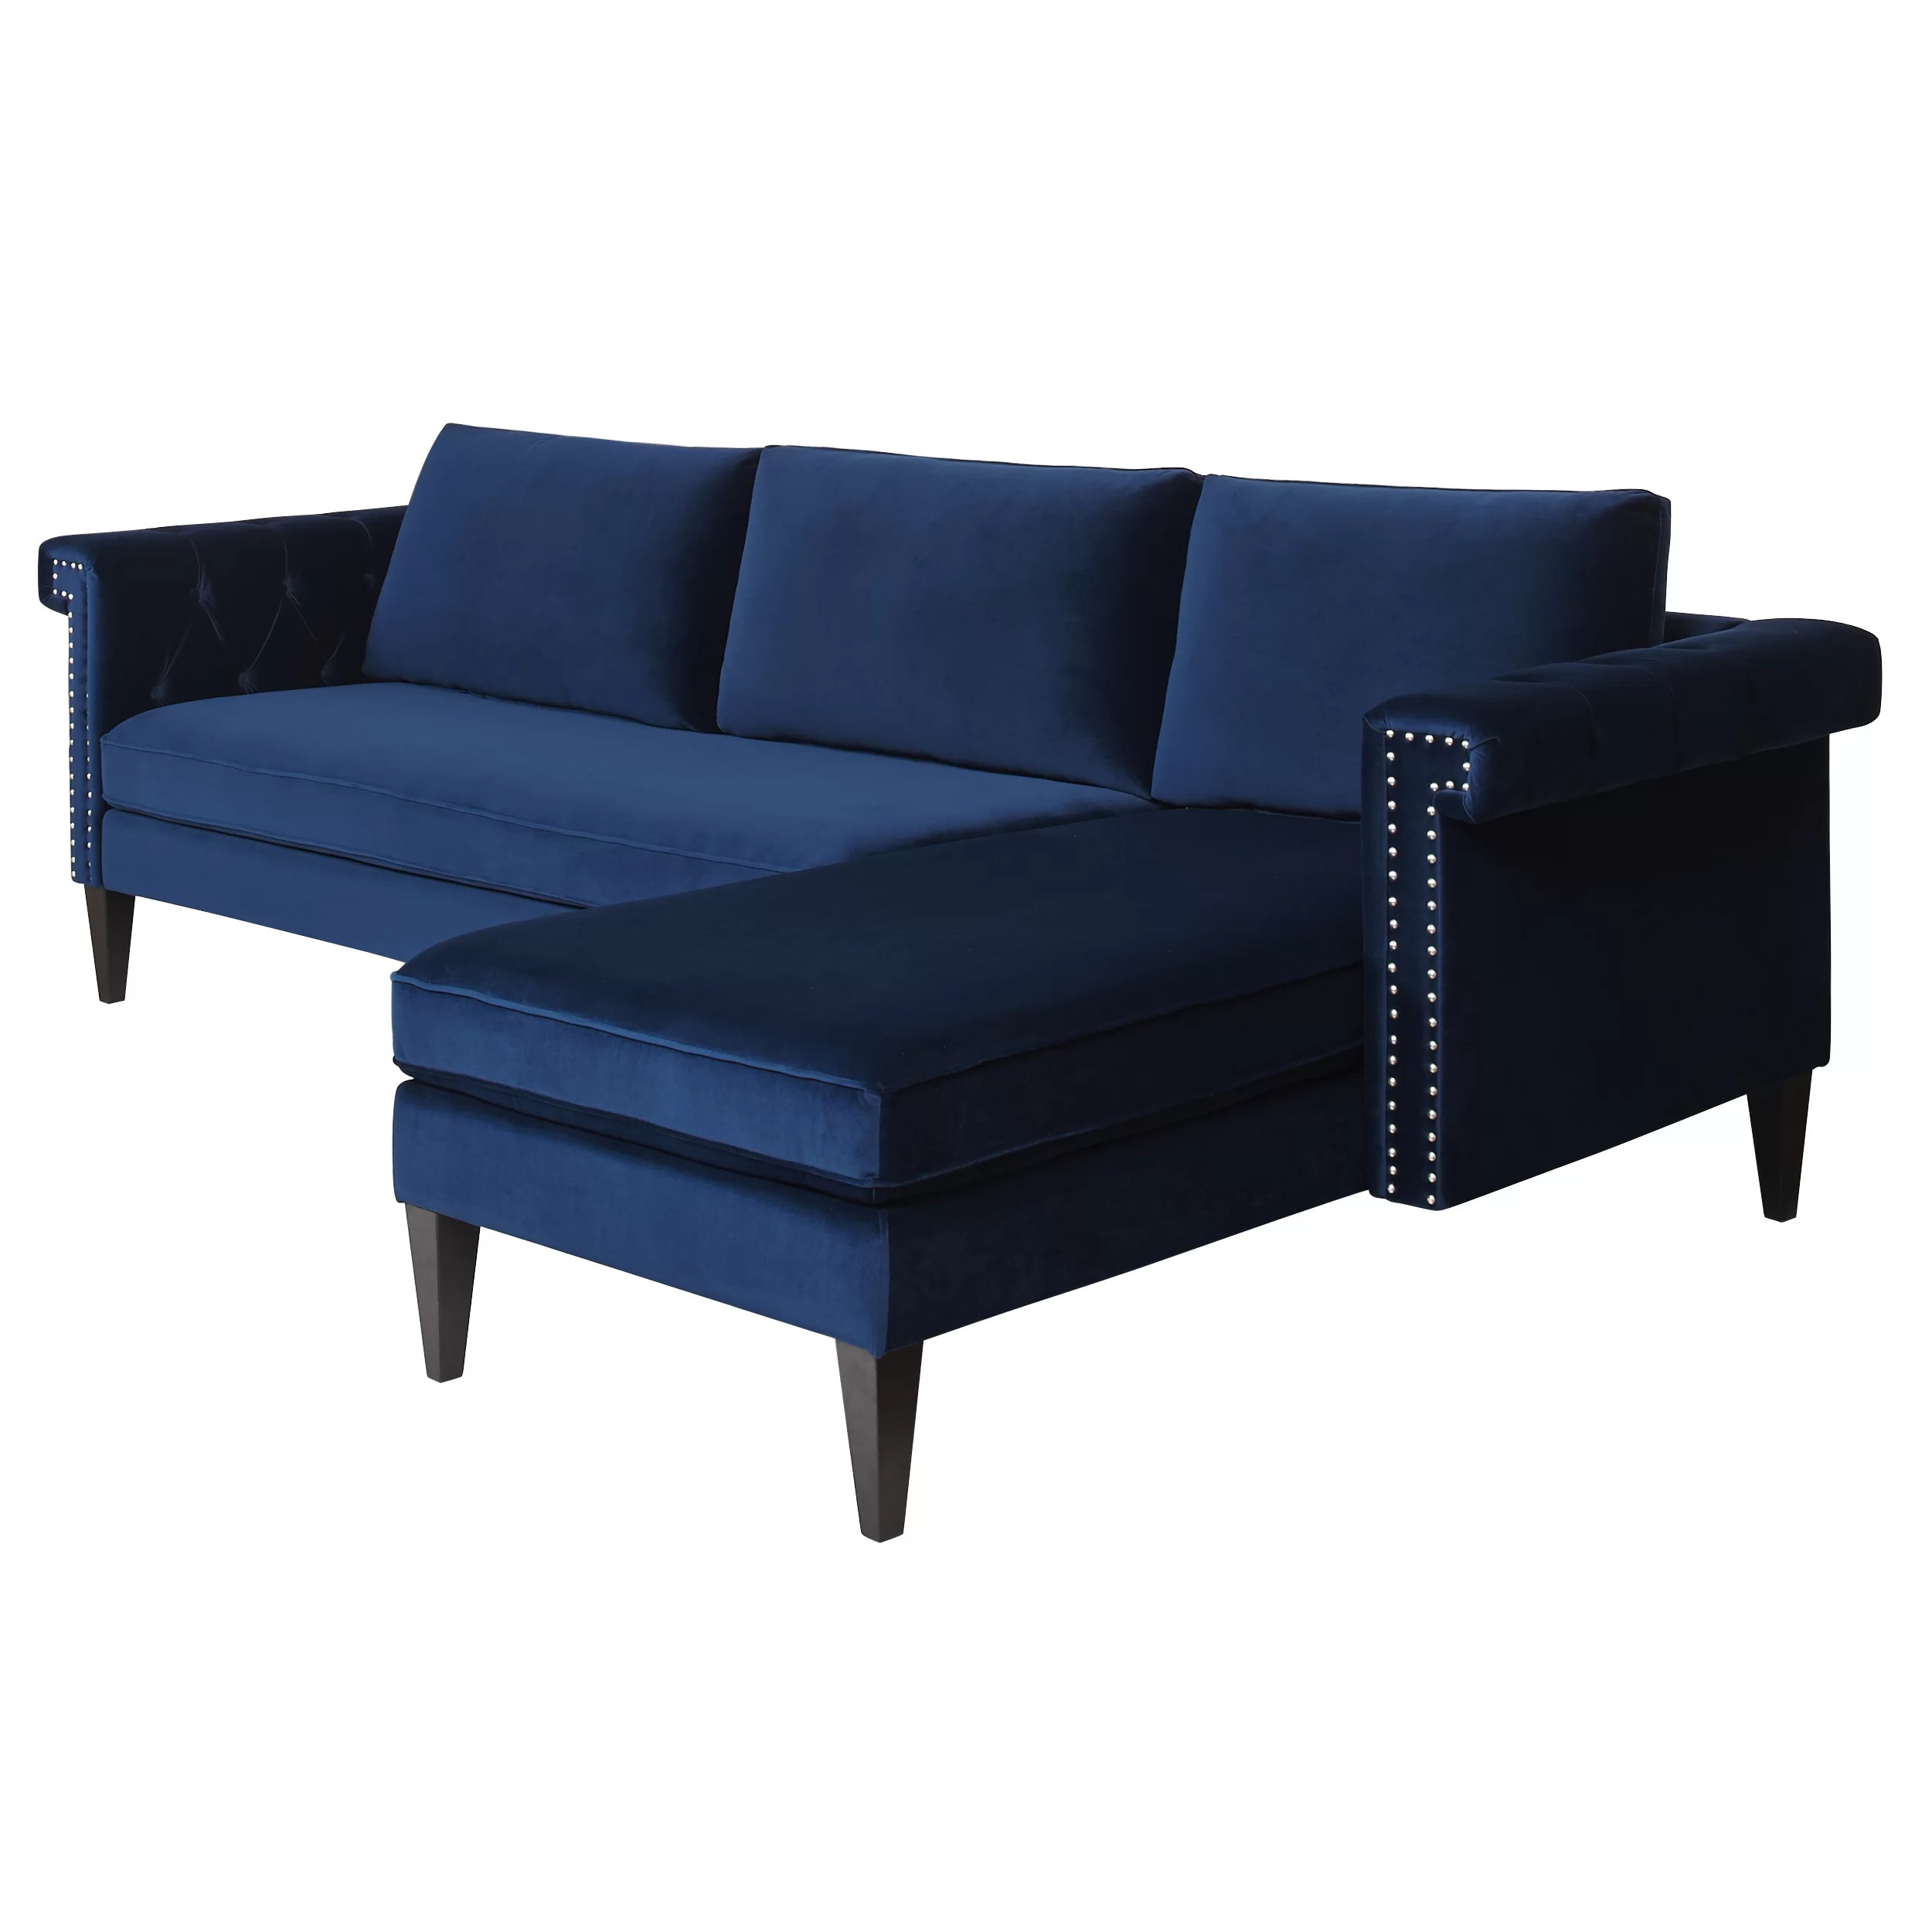 reversible sectional sofa chaise queen size click clack bed with storage mercer41 wigston and reviews